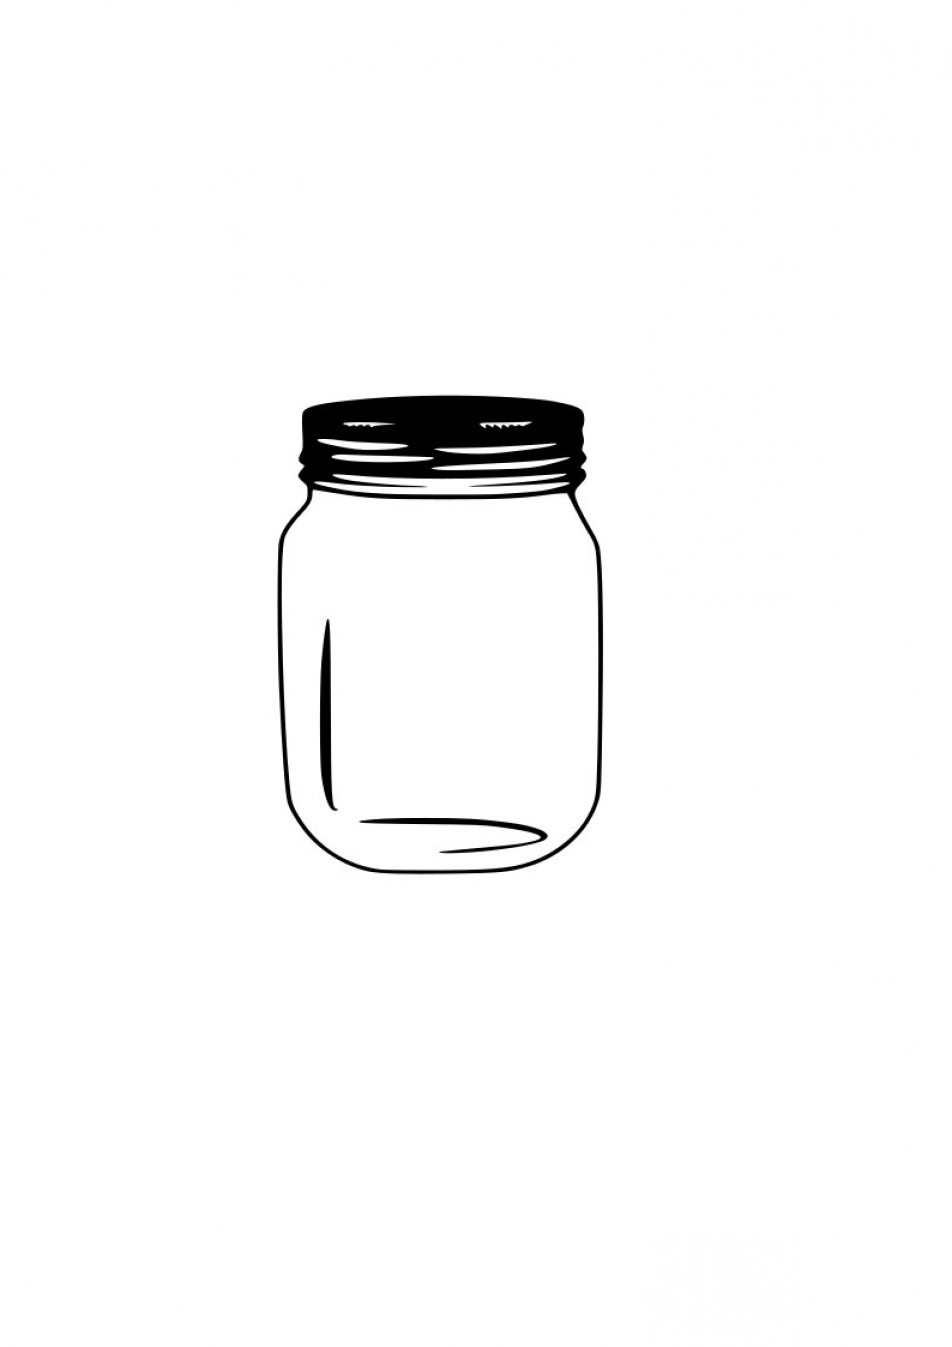 Mason Jar Outline Vector: Mason Jar Svg Outline Laptop Cup Decal